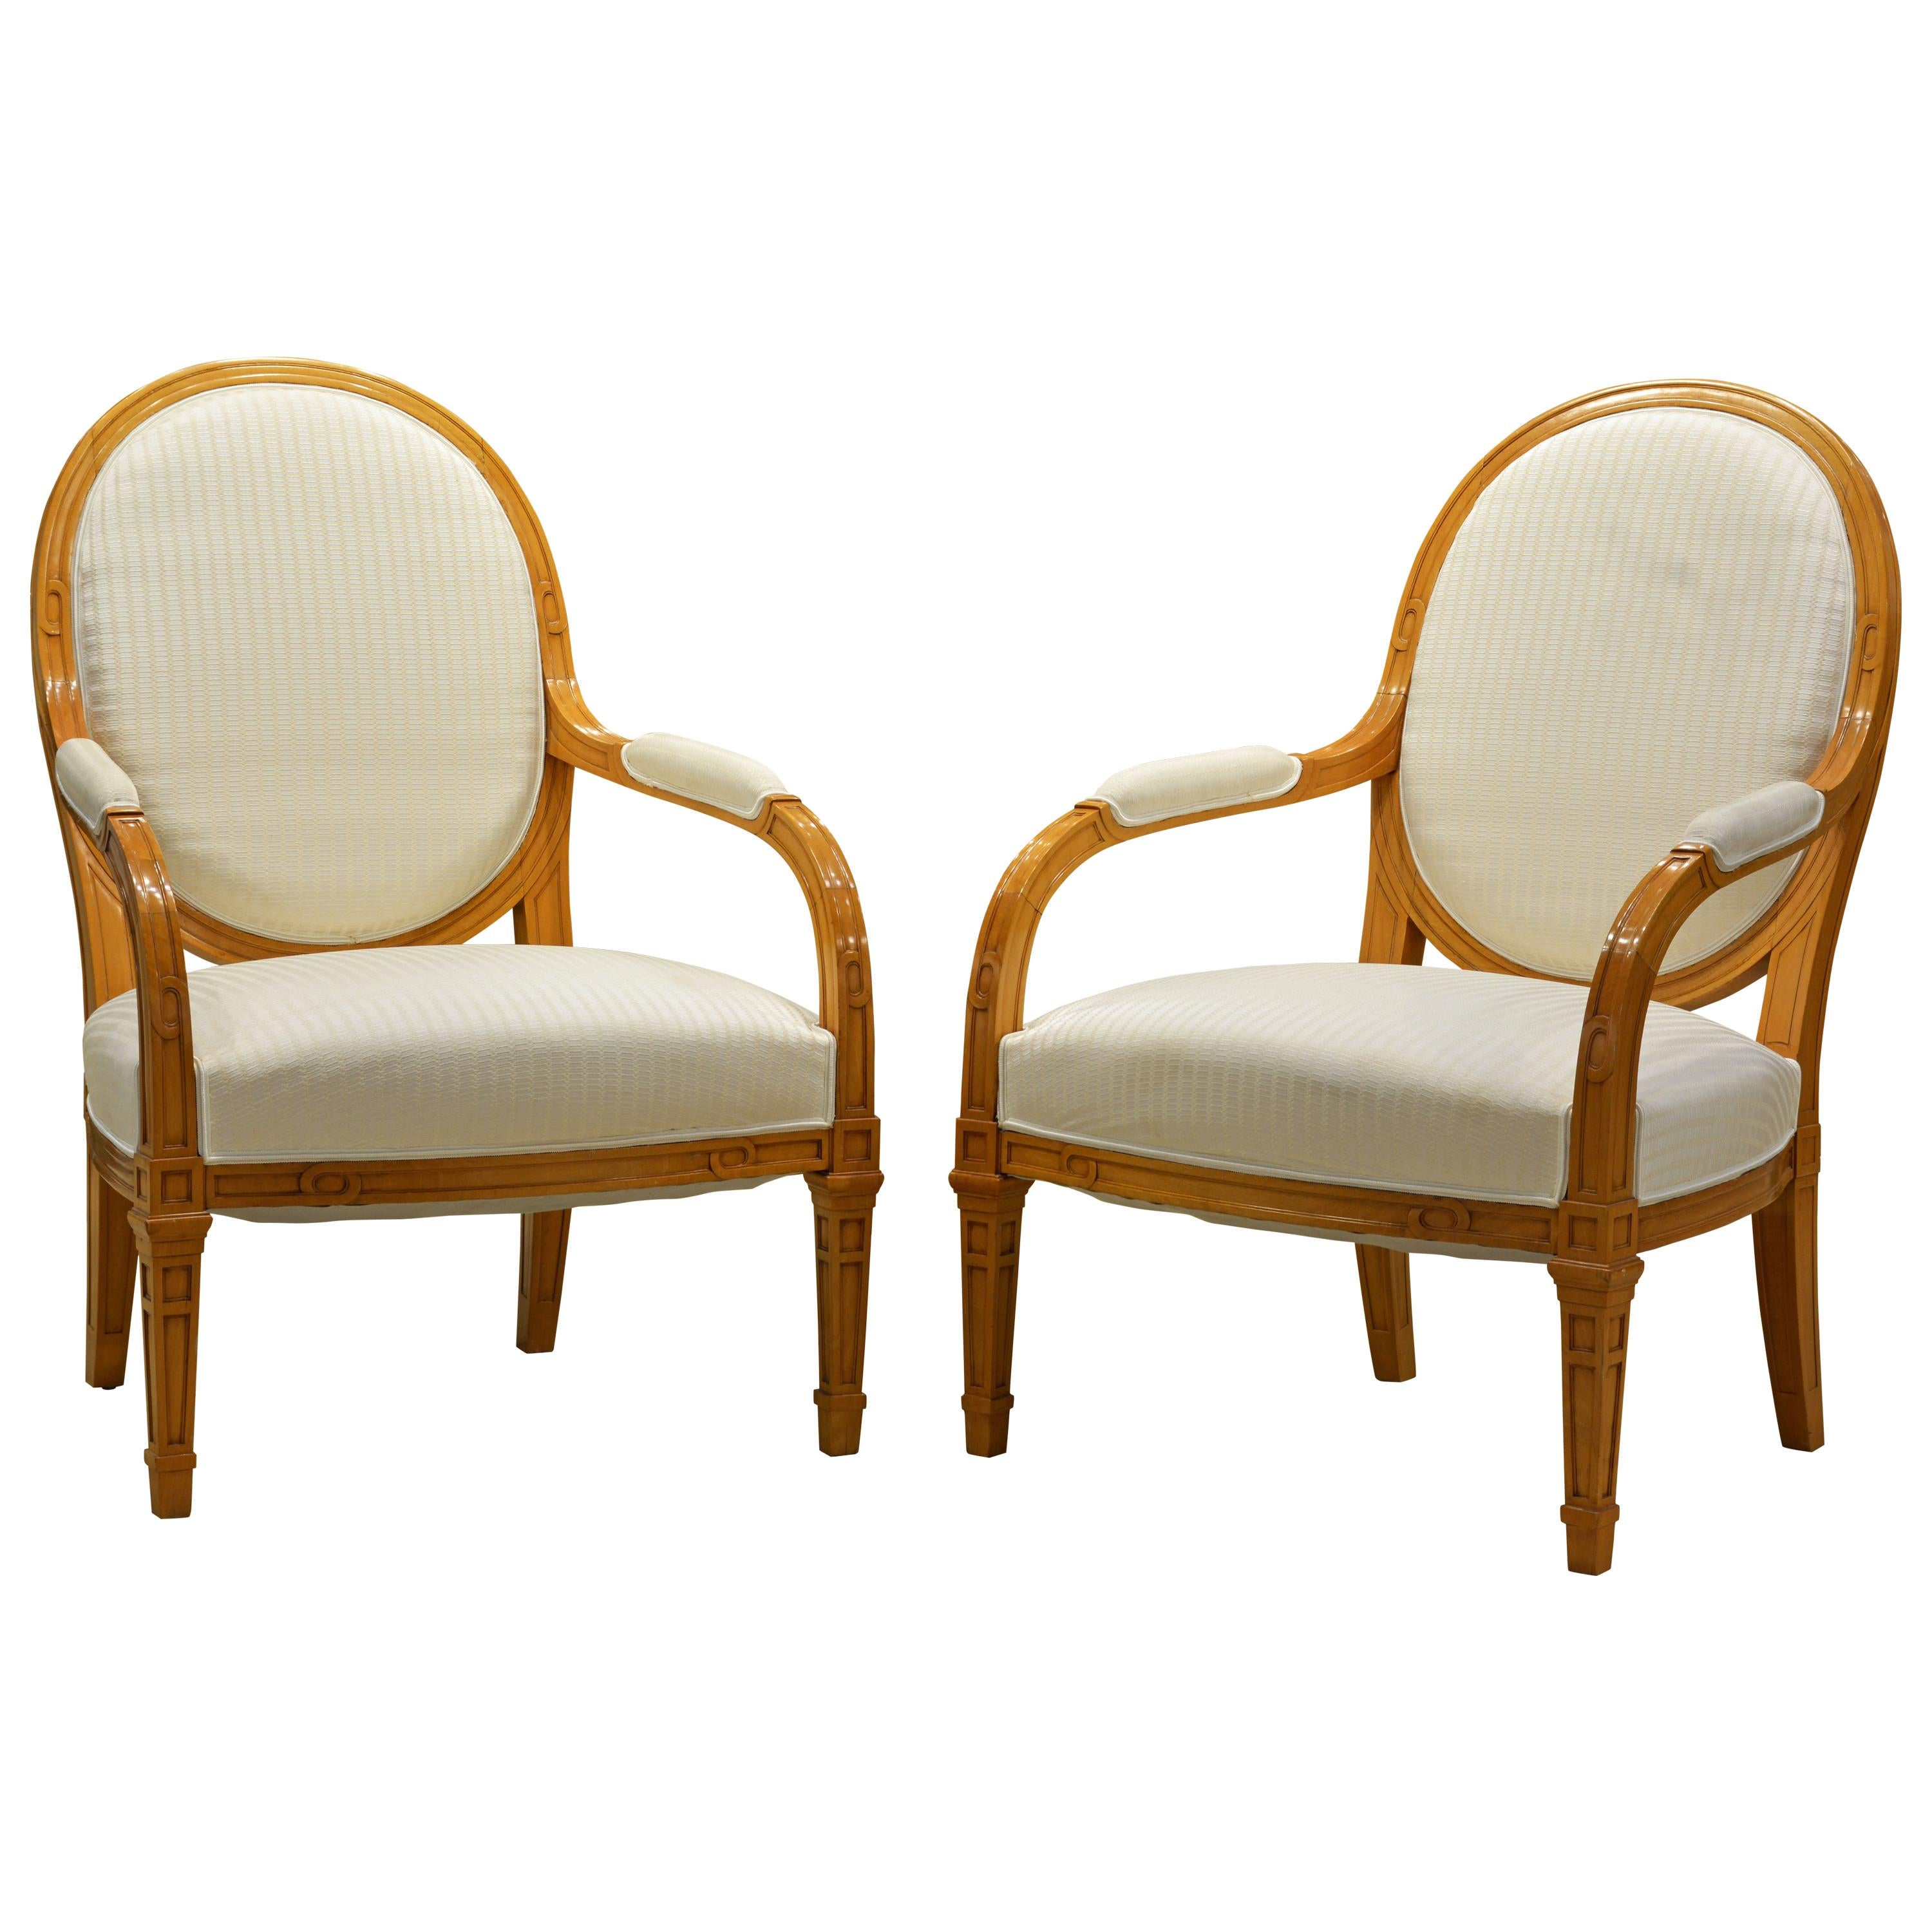 Pair of French Art Deco Era Oval Back Armchairs in the Manner of Andre Arbus